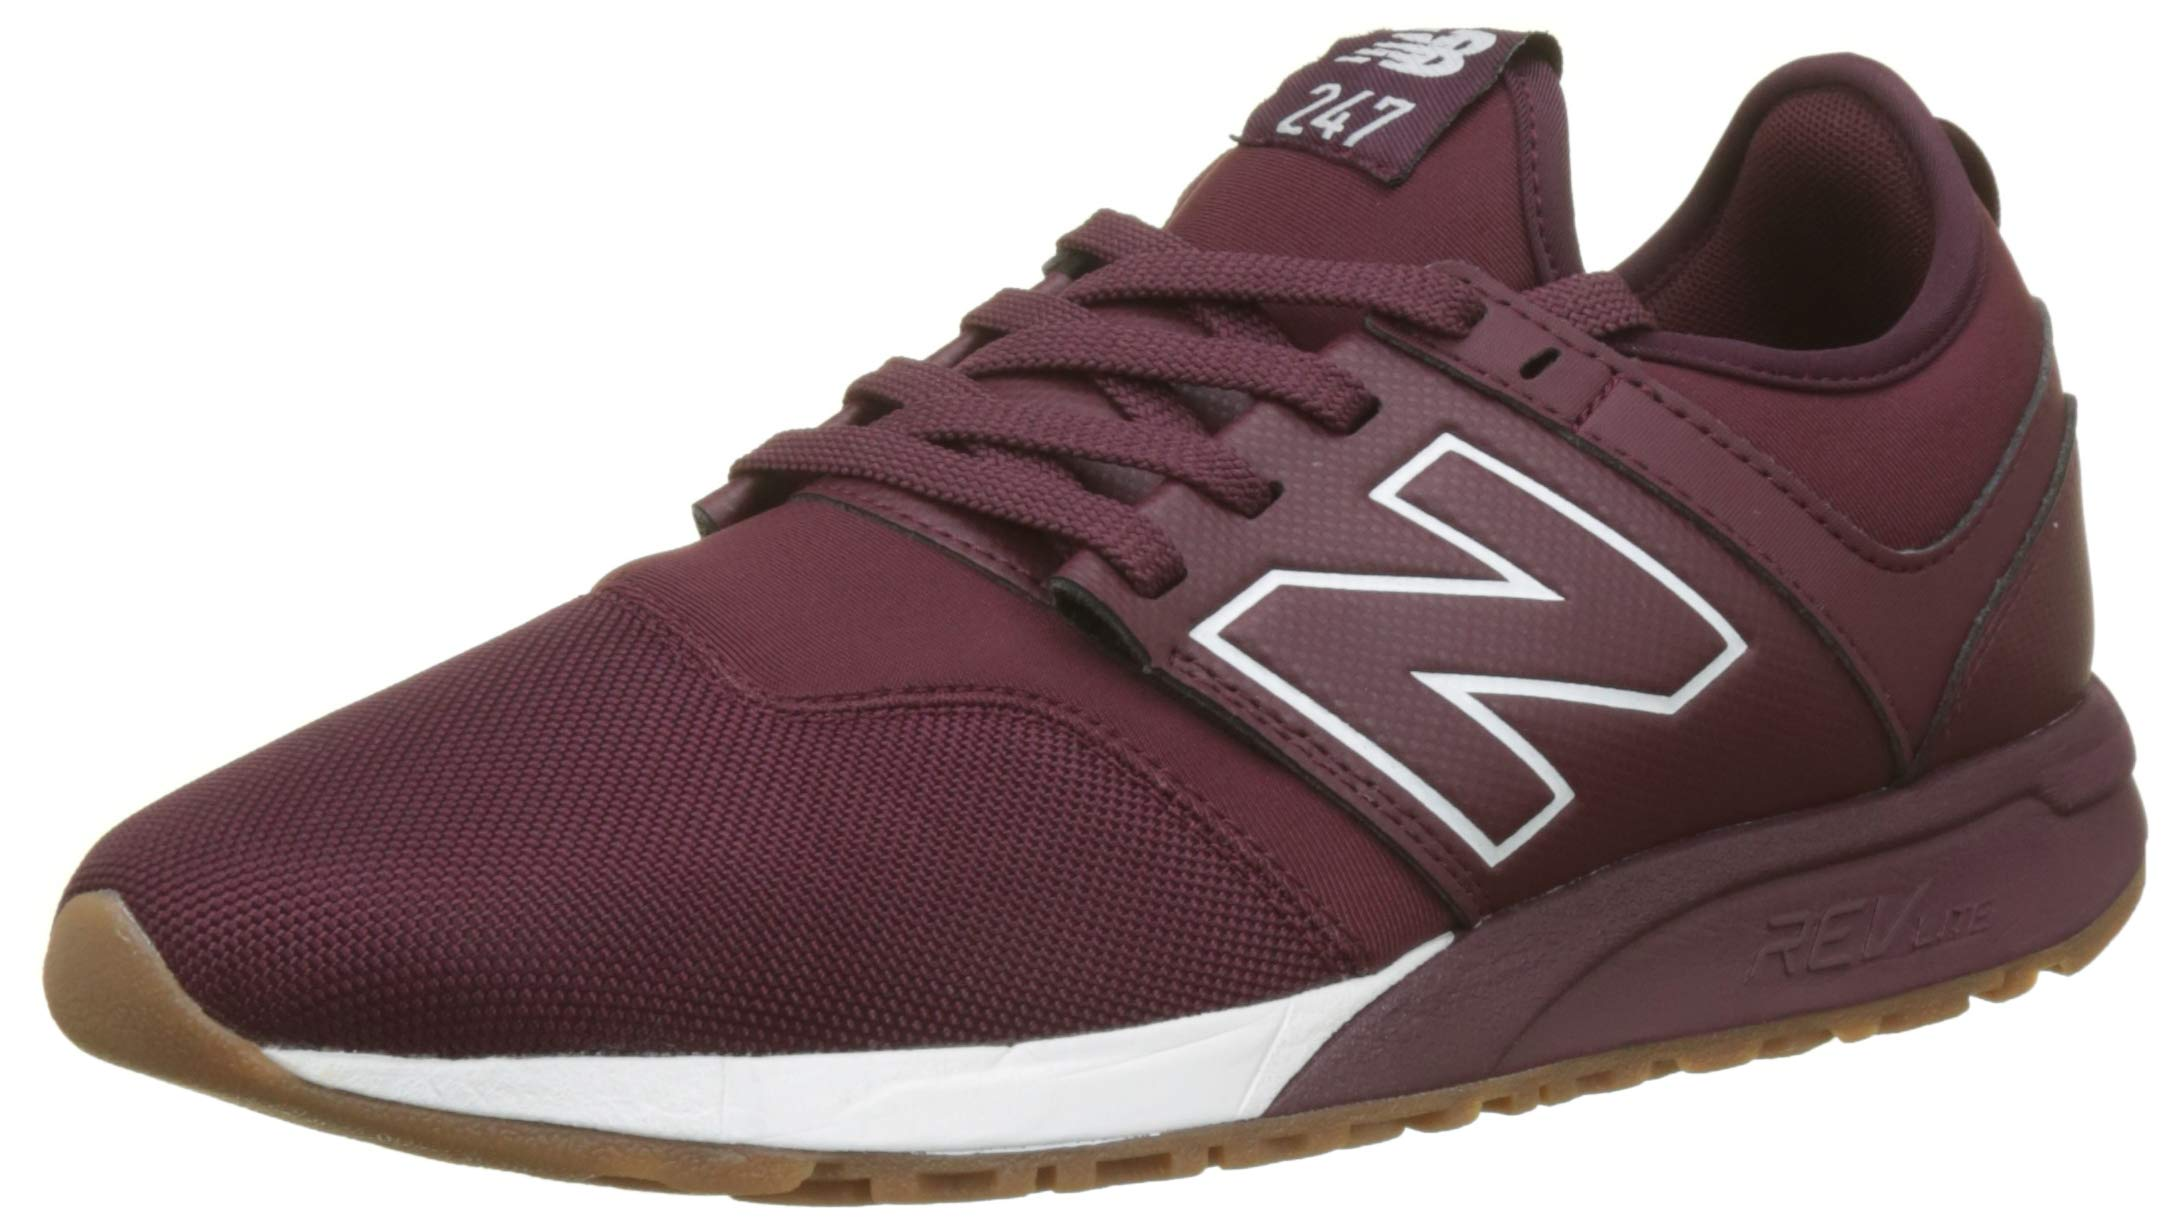 247v1Baskets Hj42 Burgundy Eu New Balance HommeRougenb 5 white A5RL4j